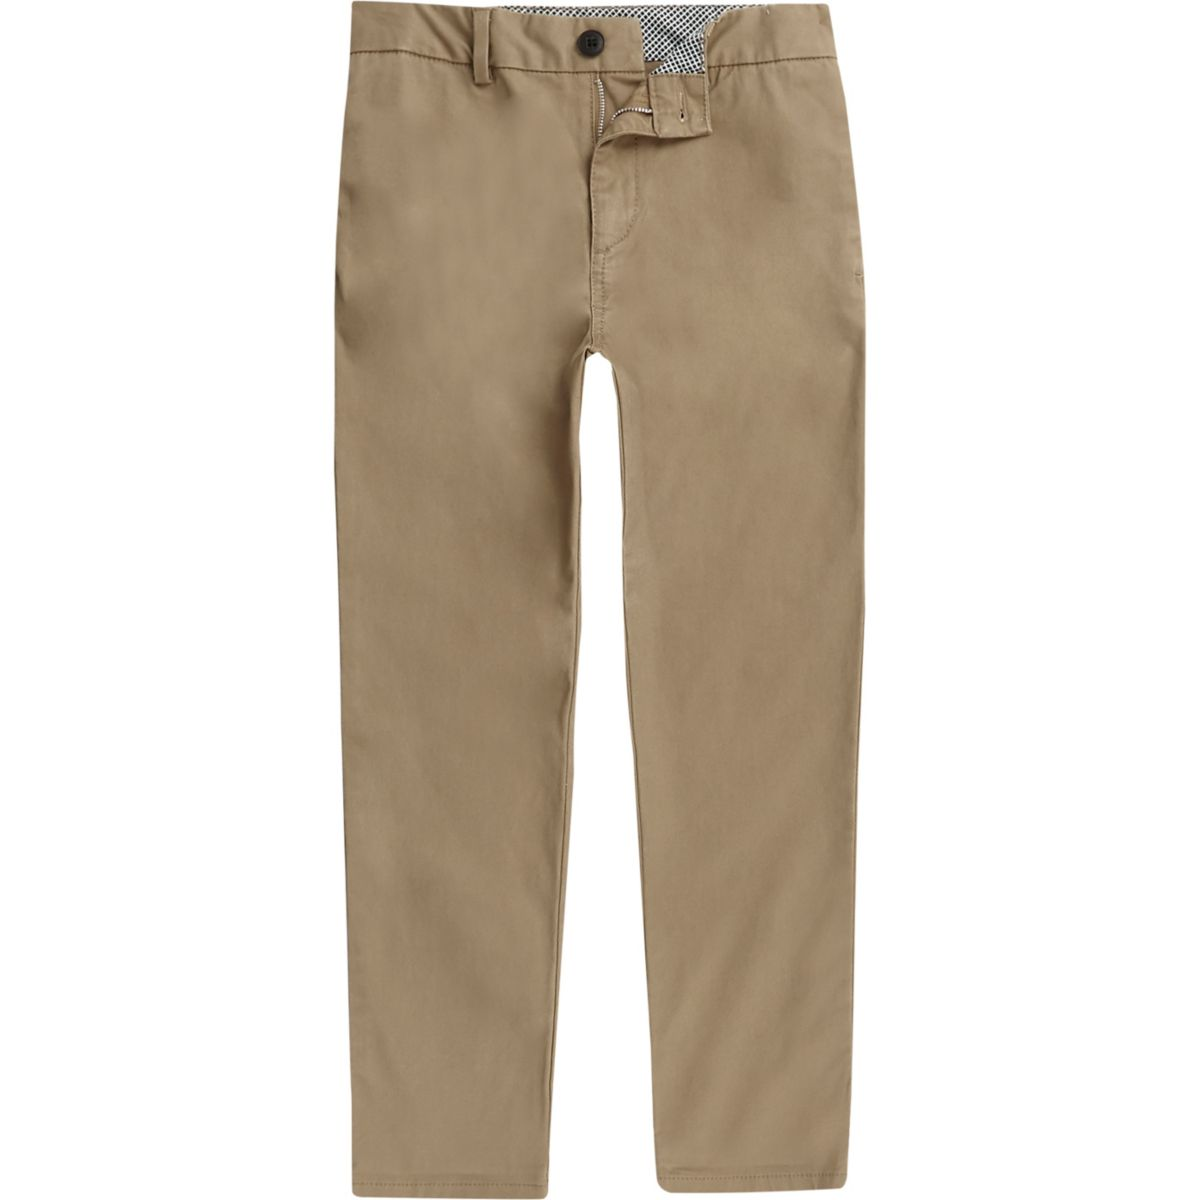 Pants + Chinos The chino pant is iconic and totally necessary in any guy's wardrobe. You'll need them for everything. Like the big milestones – graduation, a first date, or a family thing.